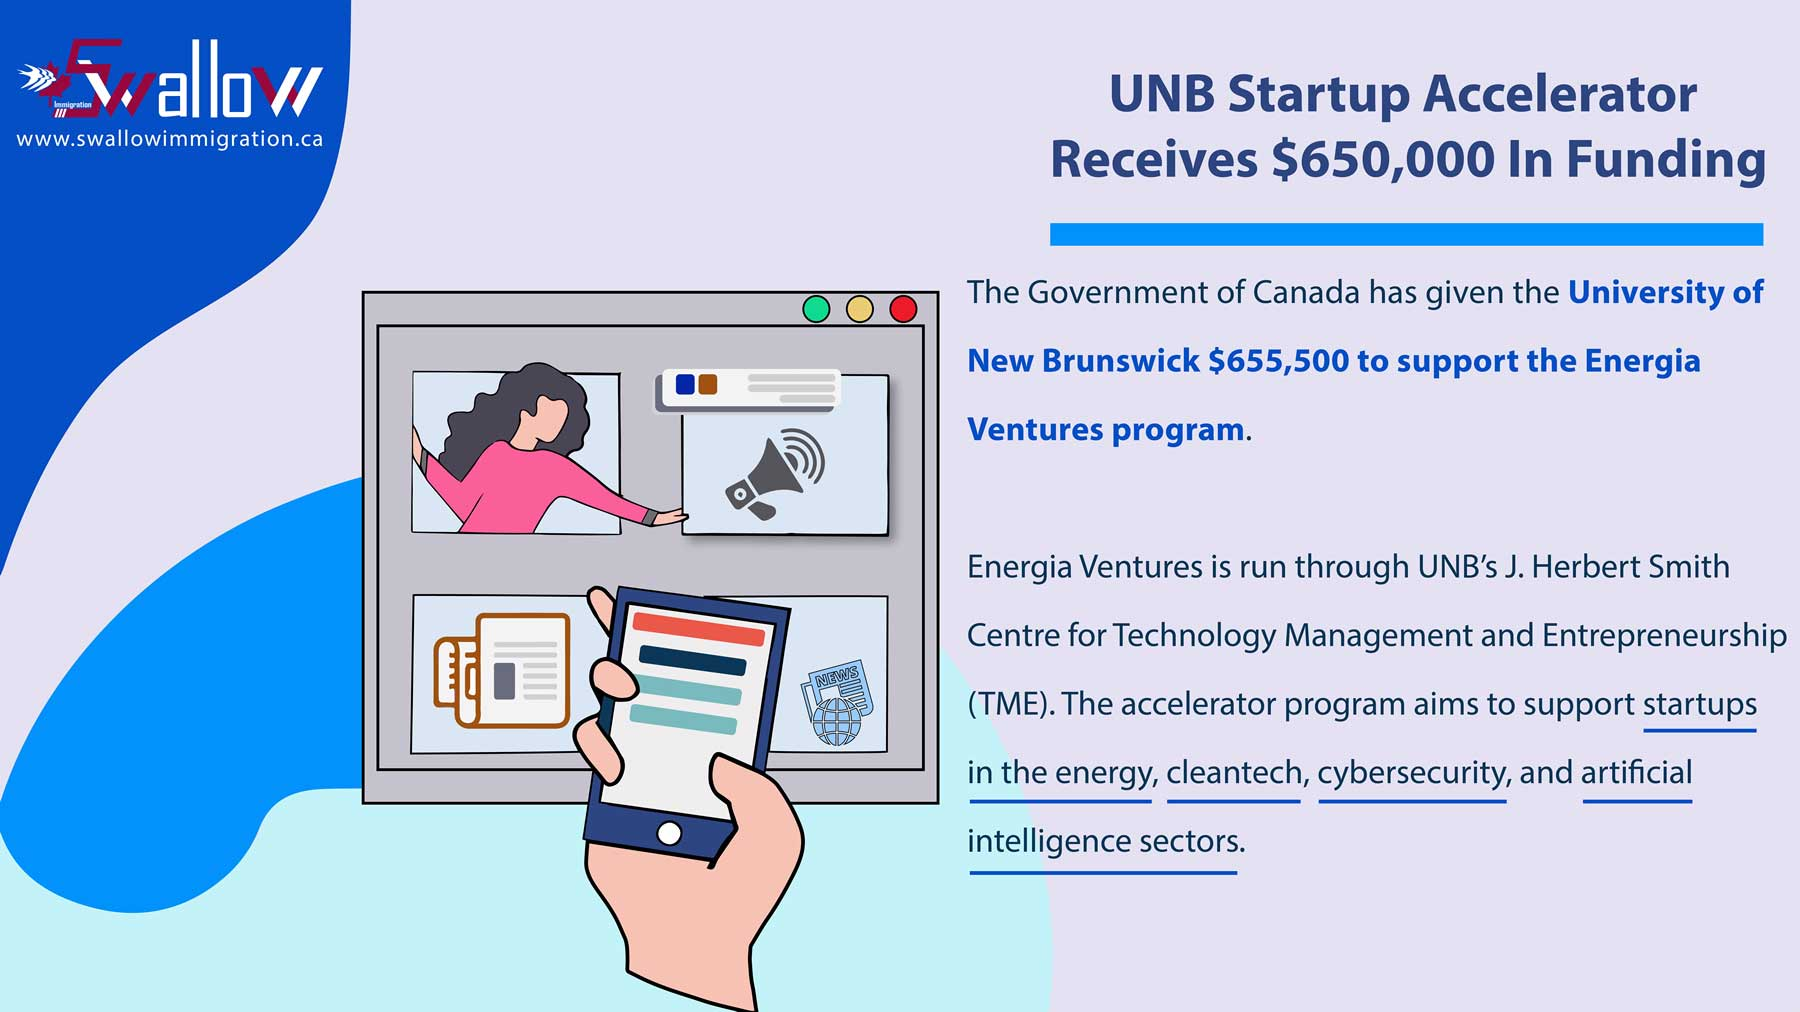 UNB Startup Accelerator Receives $650,000 In Funding